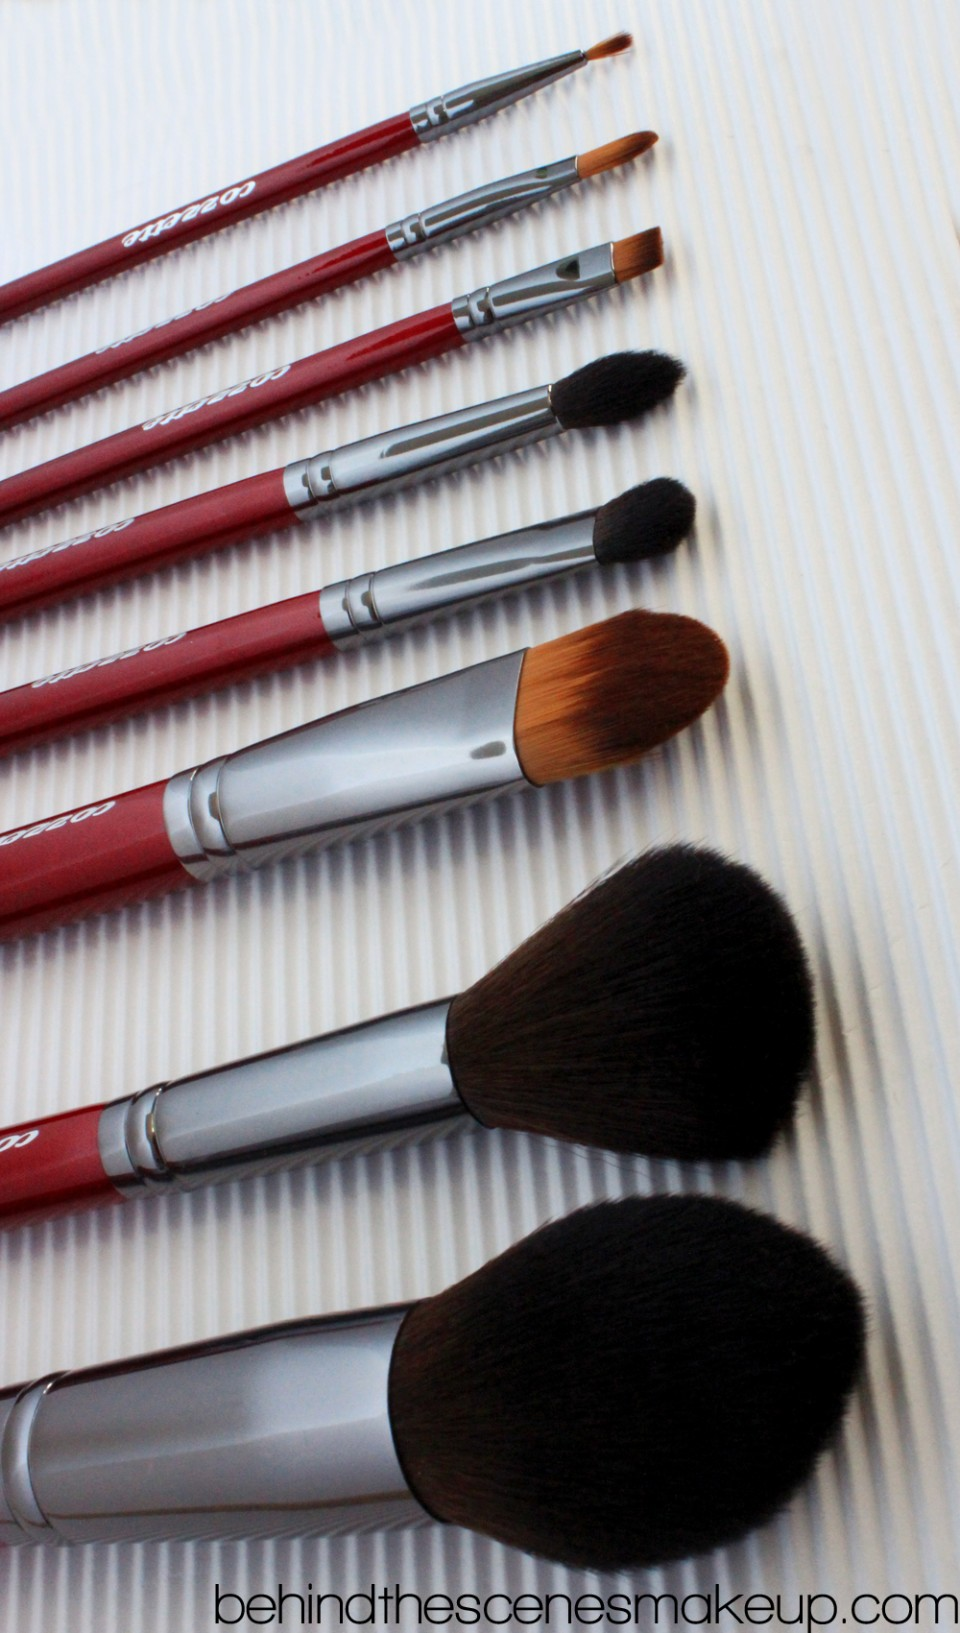 Review: Cozzette Brushes - Vitality Collection